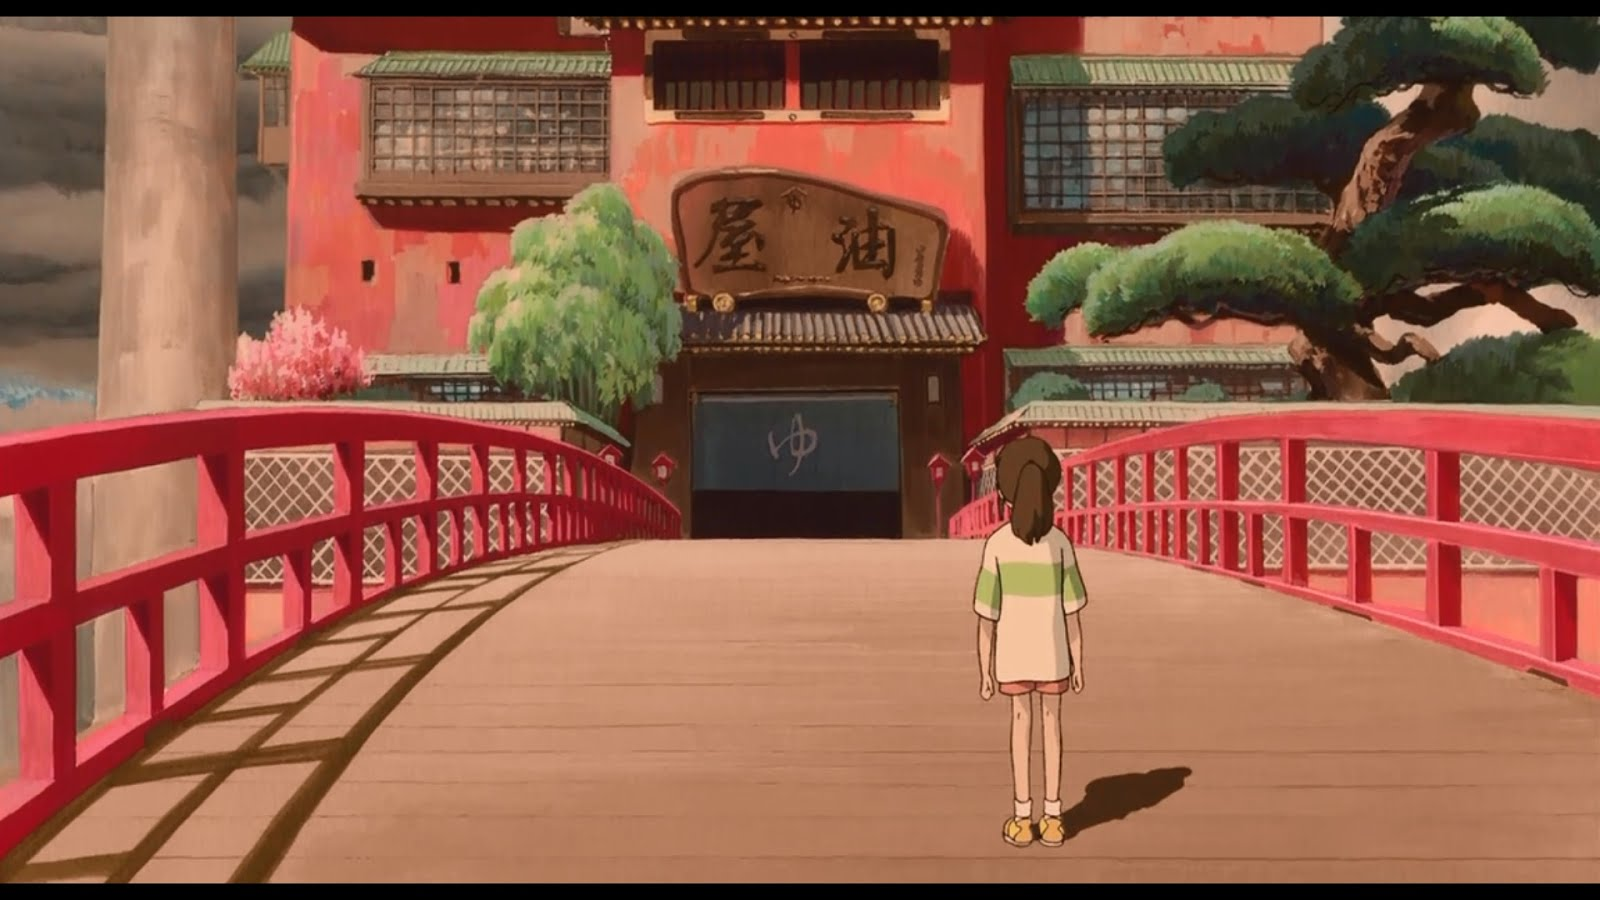 Ghibli S Wonderland Spirited Away Never Forget Who We Are No Matter What Happens